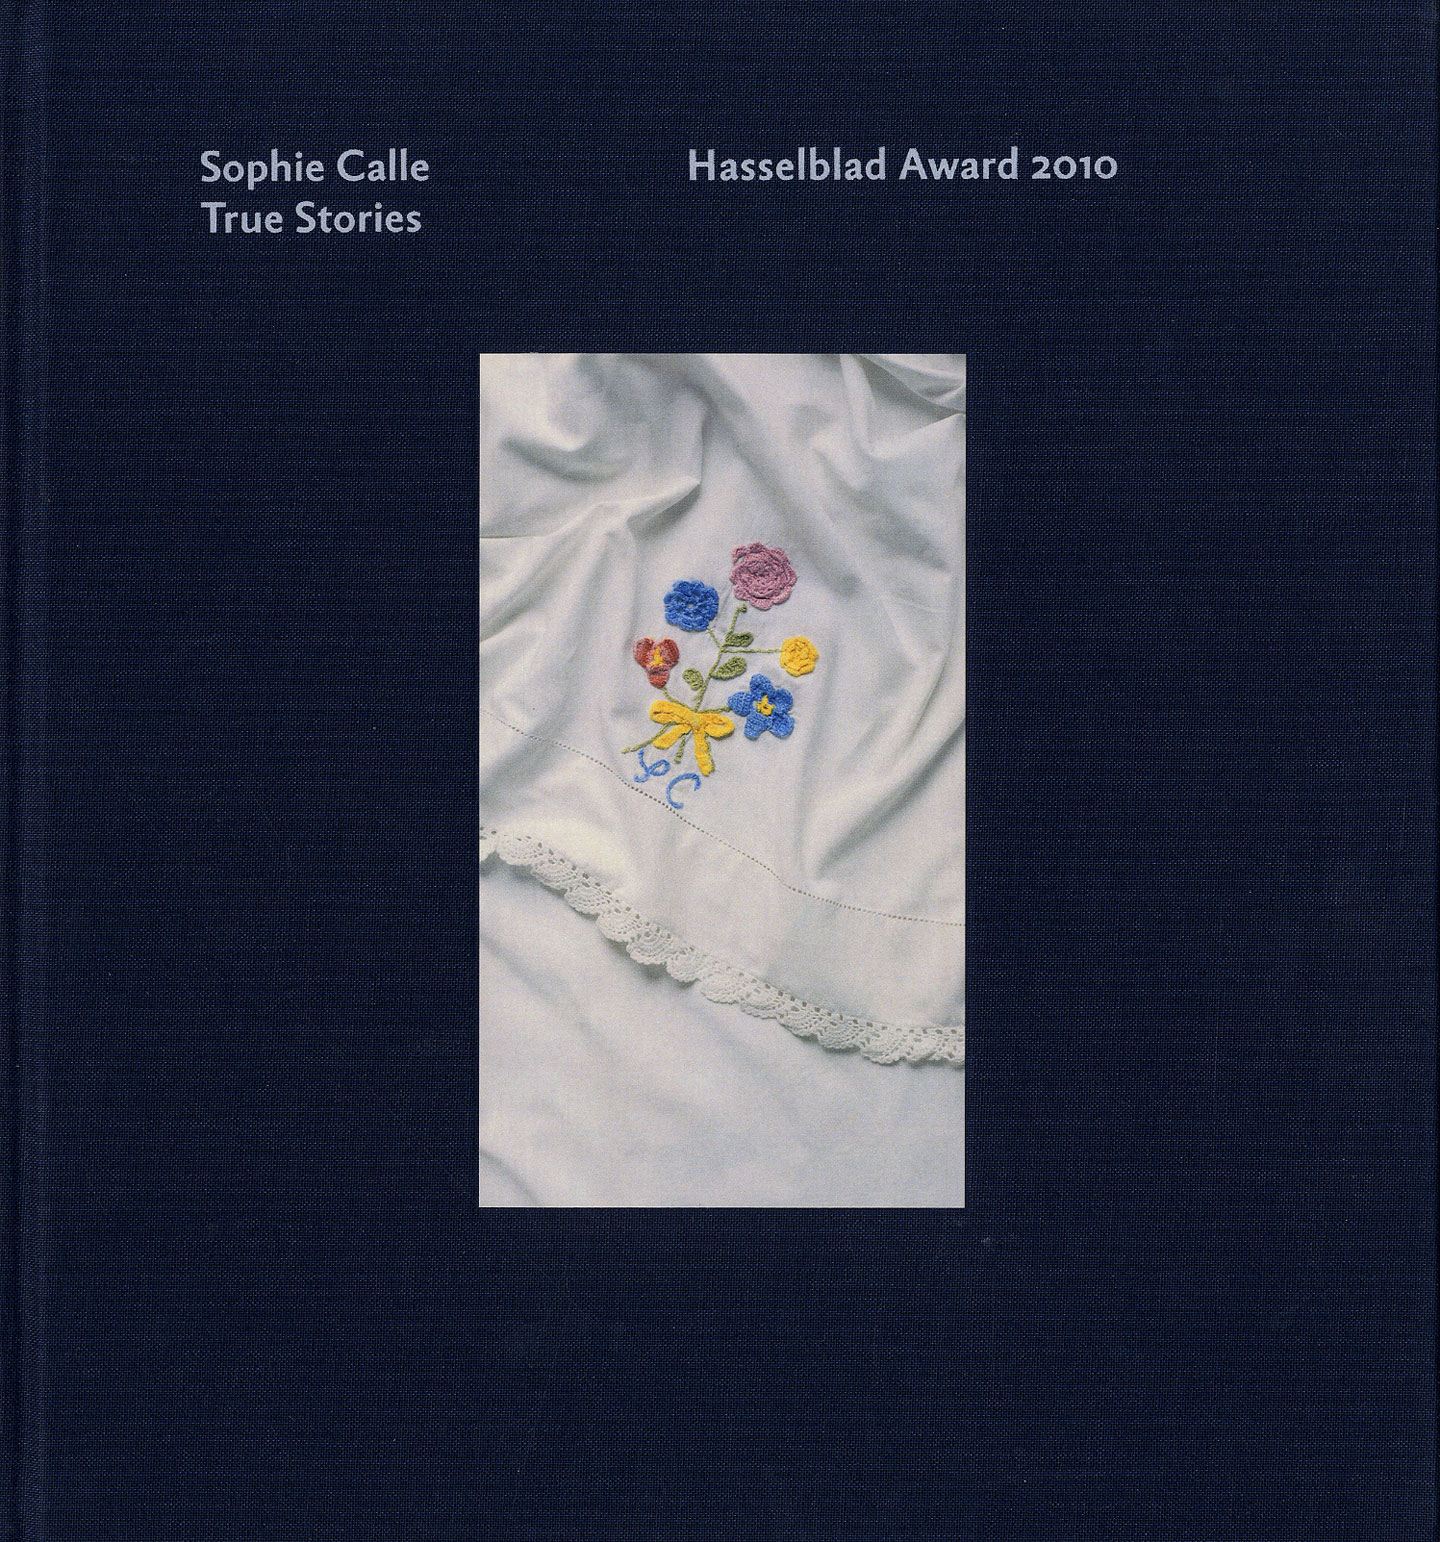 Sophie Calle: True Stories. The Hasselblad Award in Photography, 2010